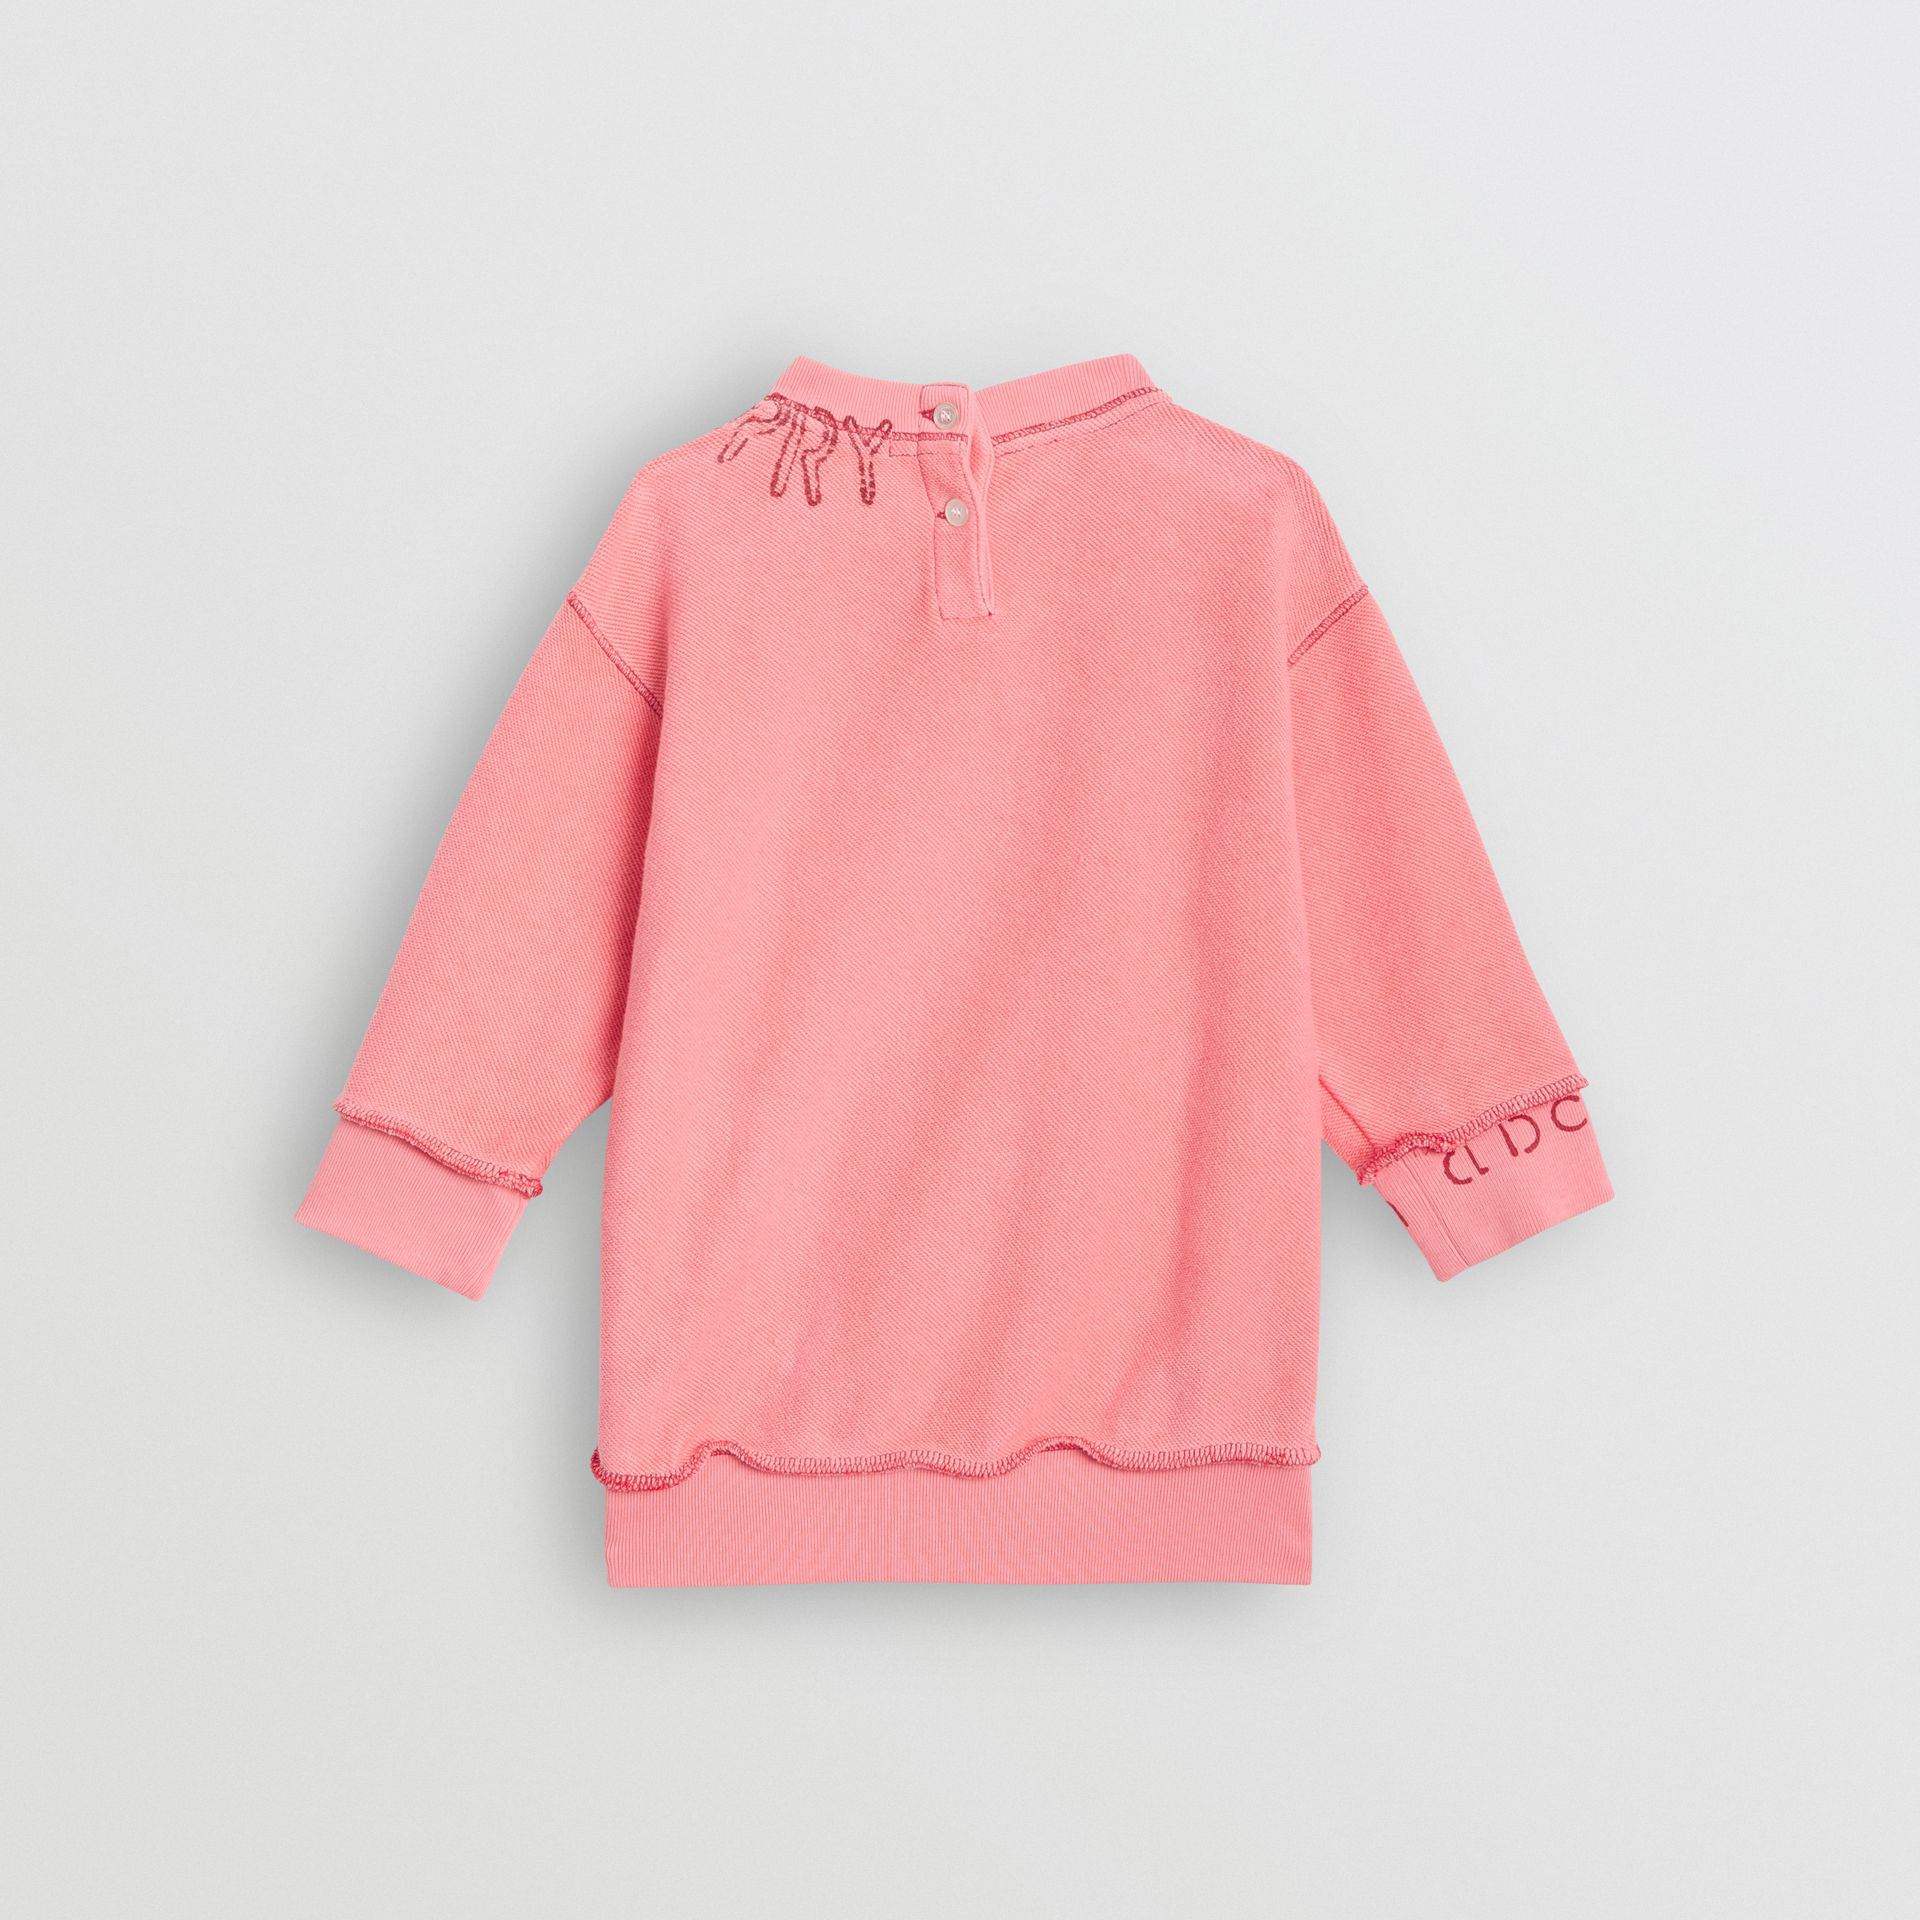 Stencil Logo Print Cotton Sweater Dress in Bright Pink - Children | Burberry Canada - gallery image 3